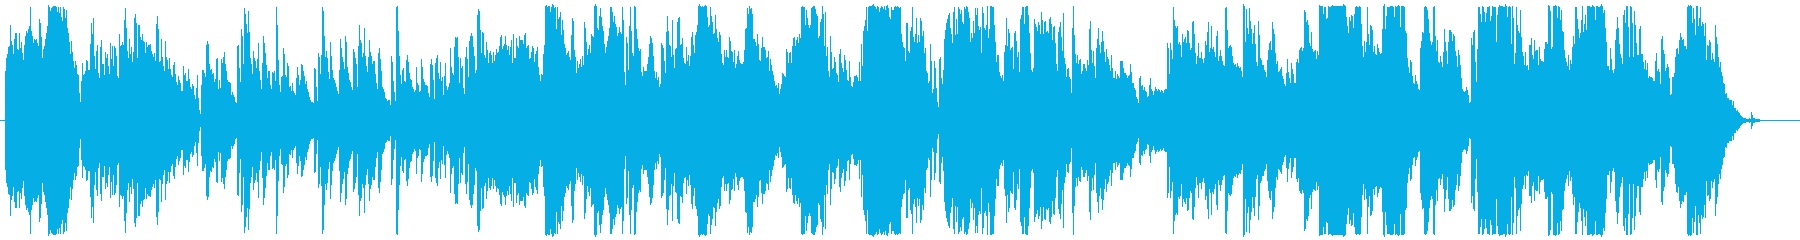 Mysterious introduction that is most suitable for the introductory part of the story's reproduced waveform